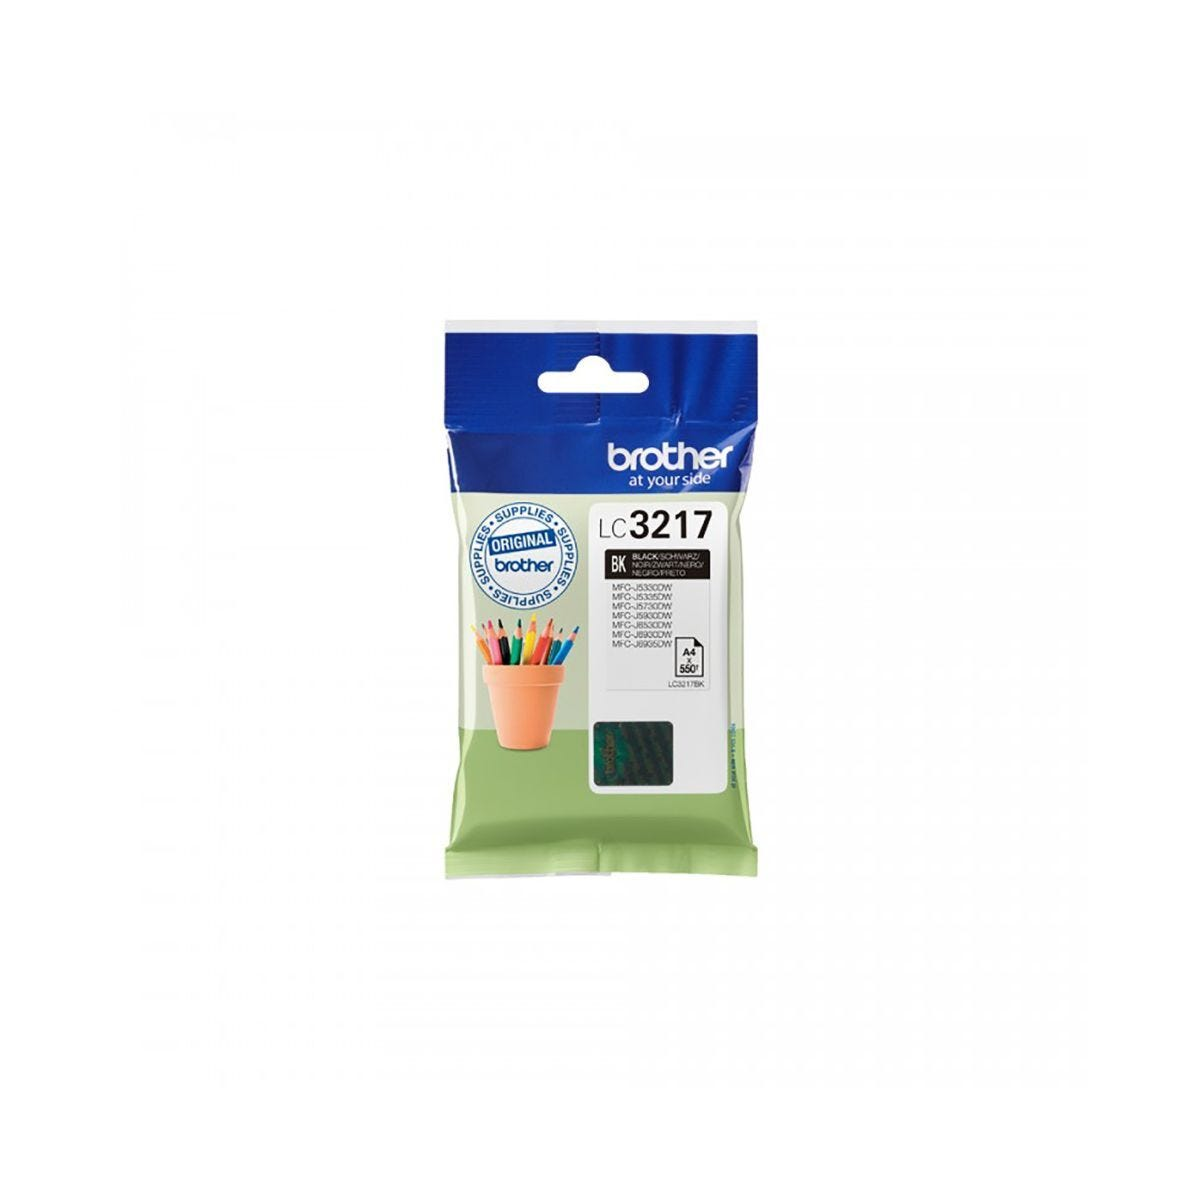 Brother LC3217 Black Ink Cartridge